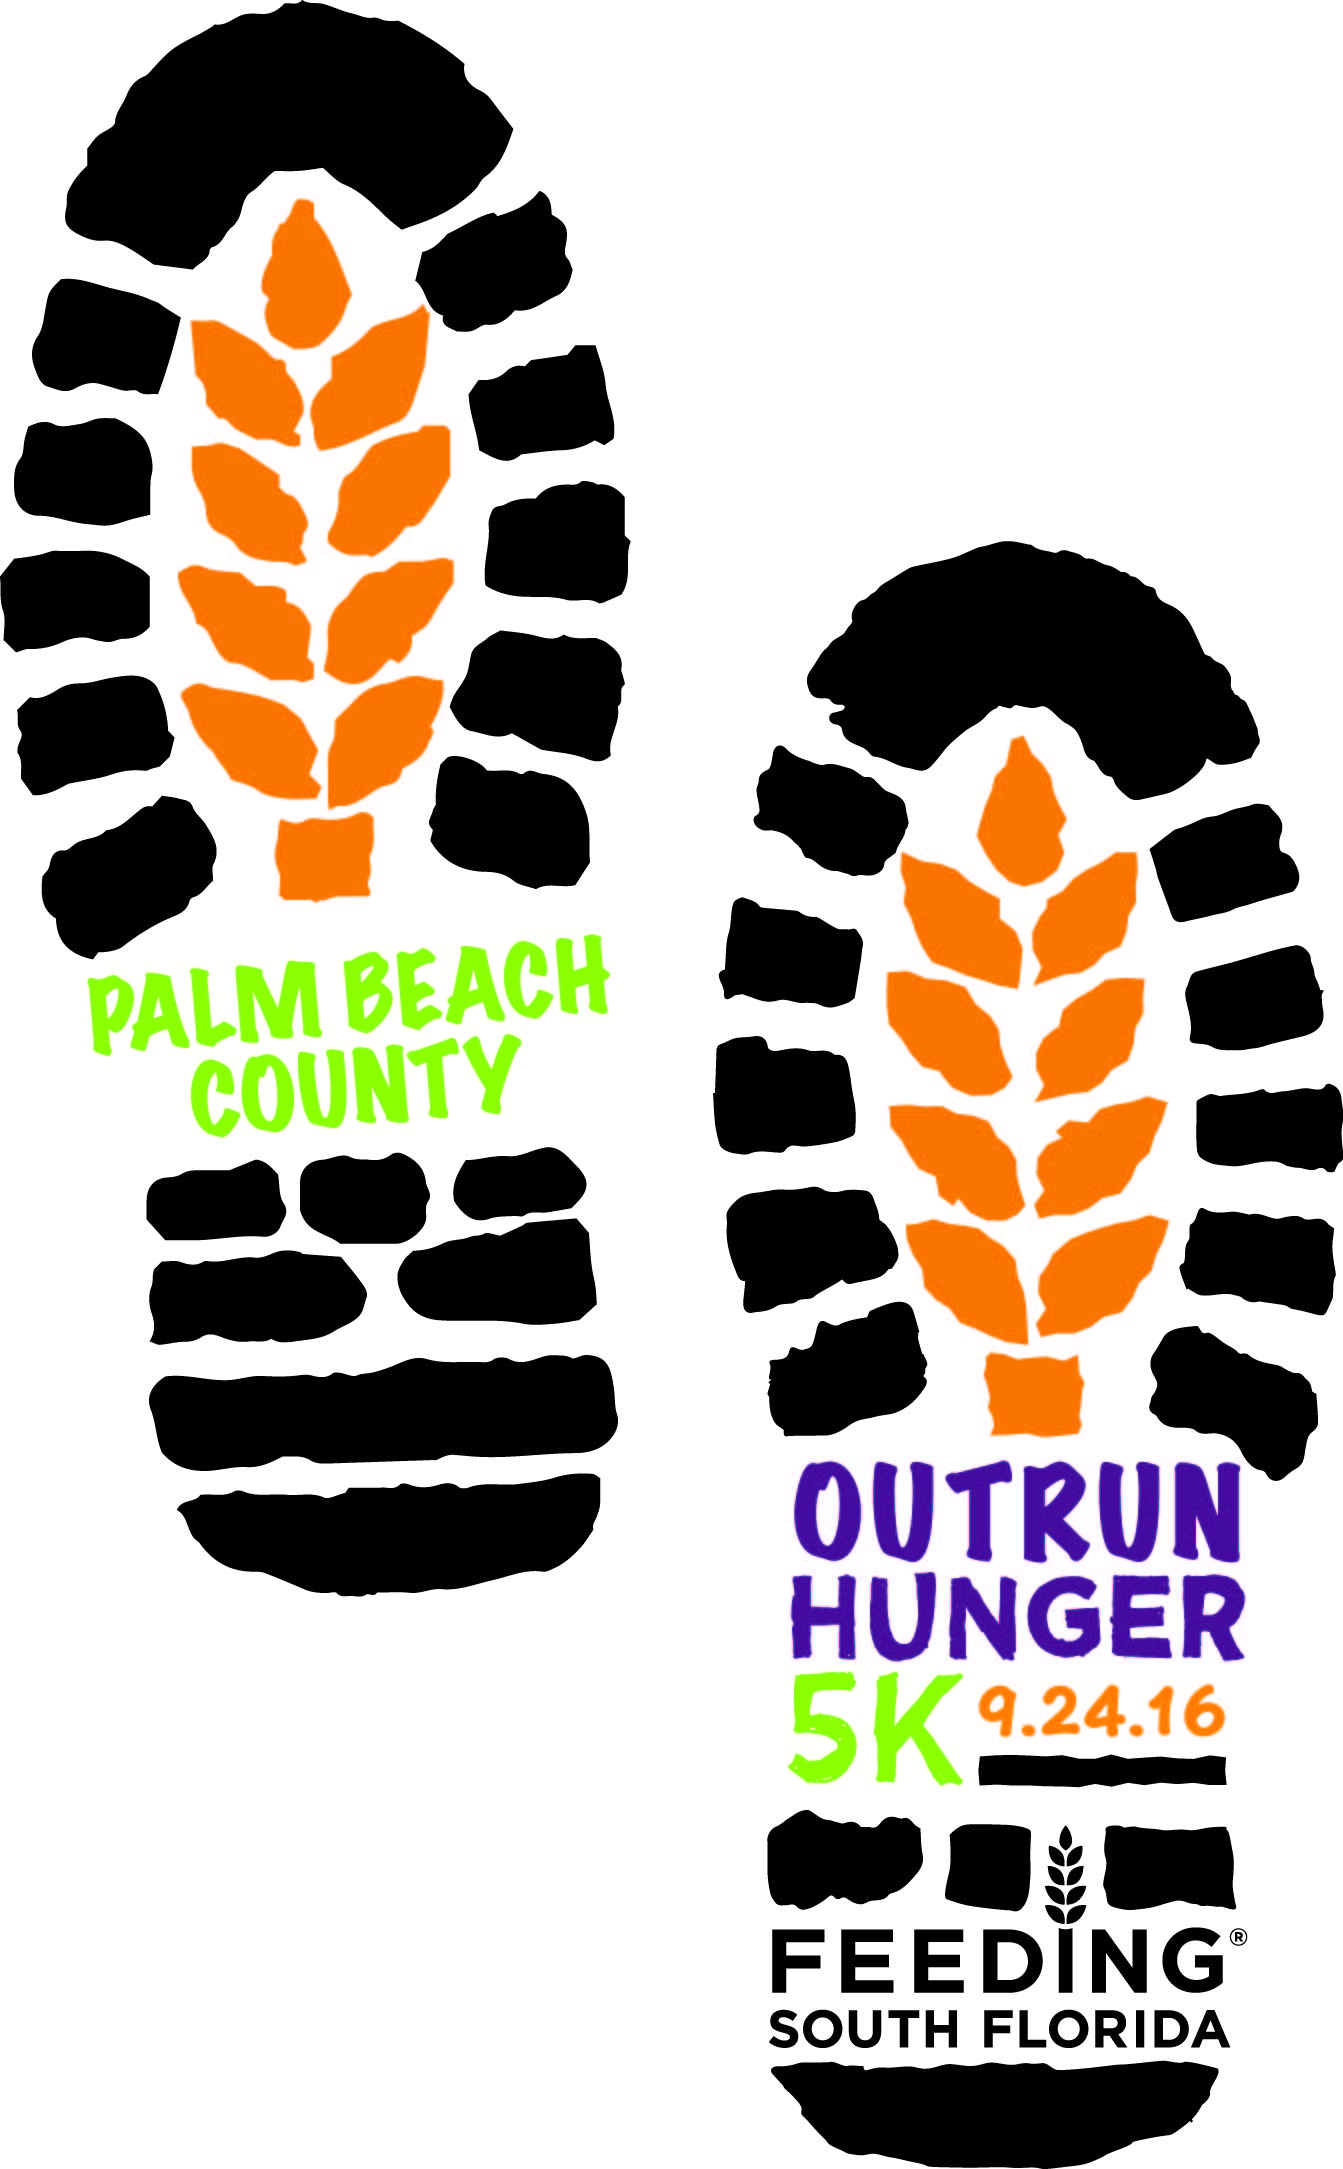 Outrun Hunger Palm Beach County 5K